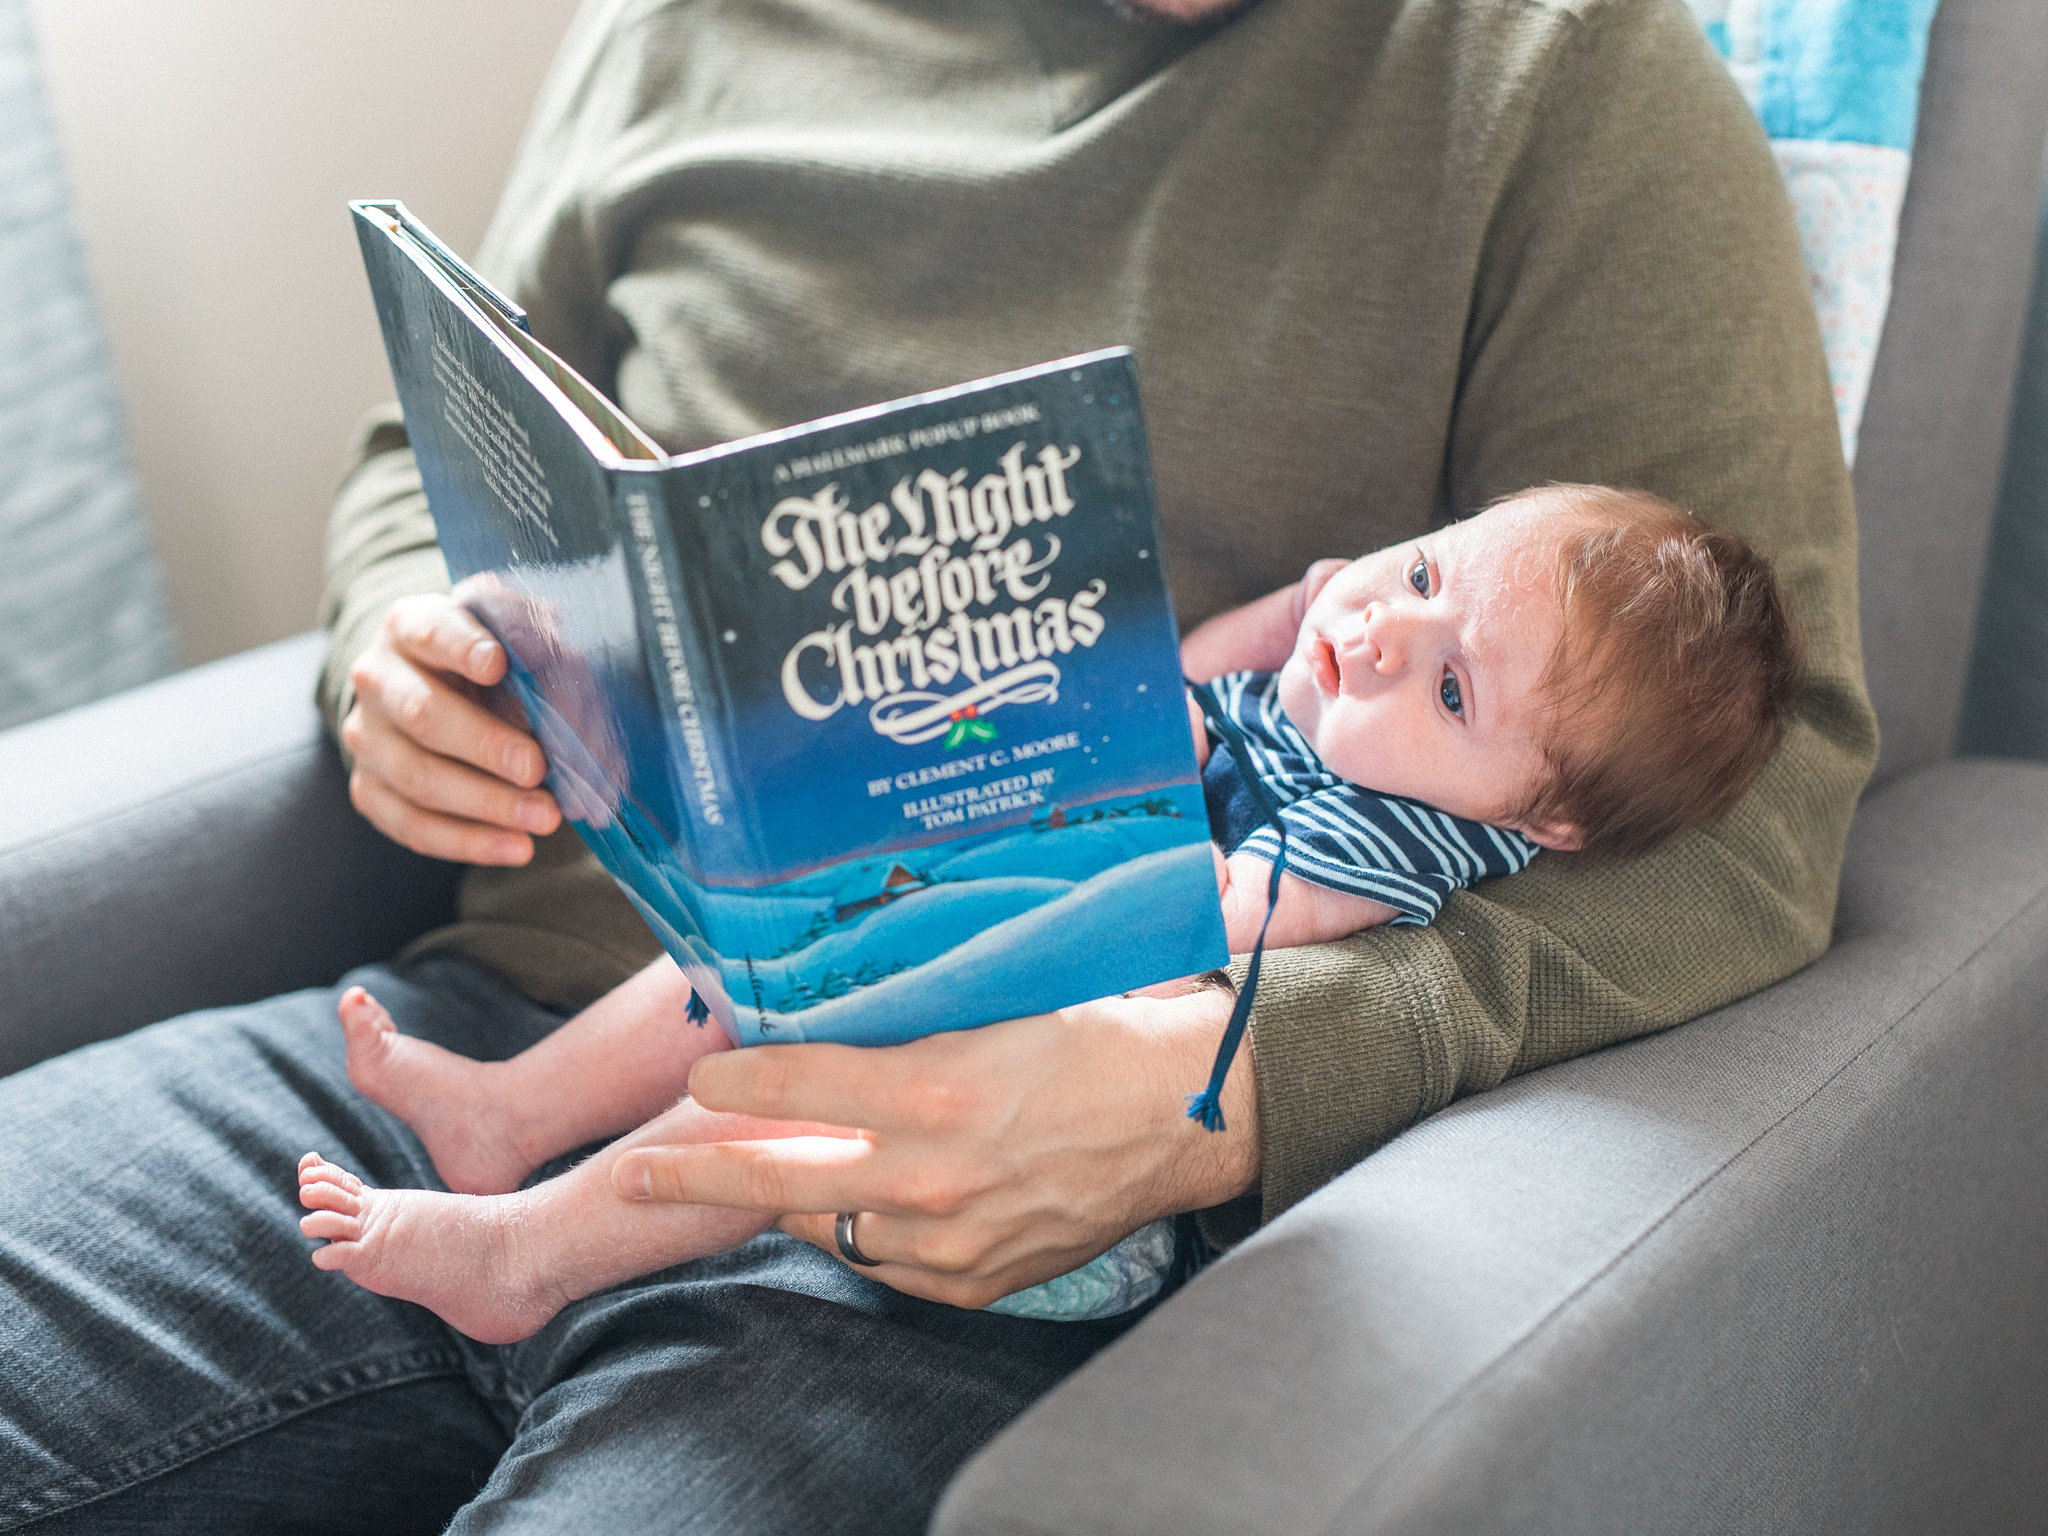 The night before Christmas, children's book, Lifestyle Newborn Session, Baby's First Christmas